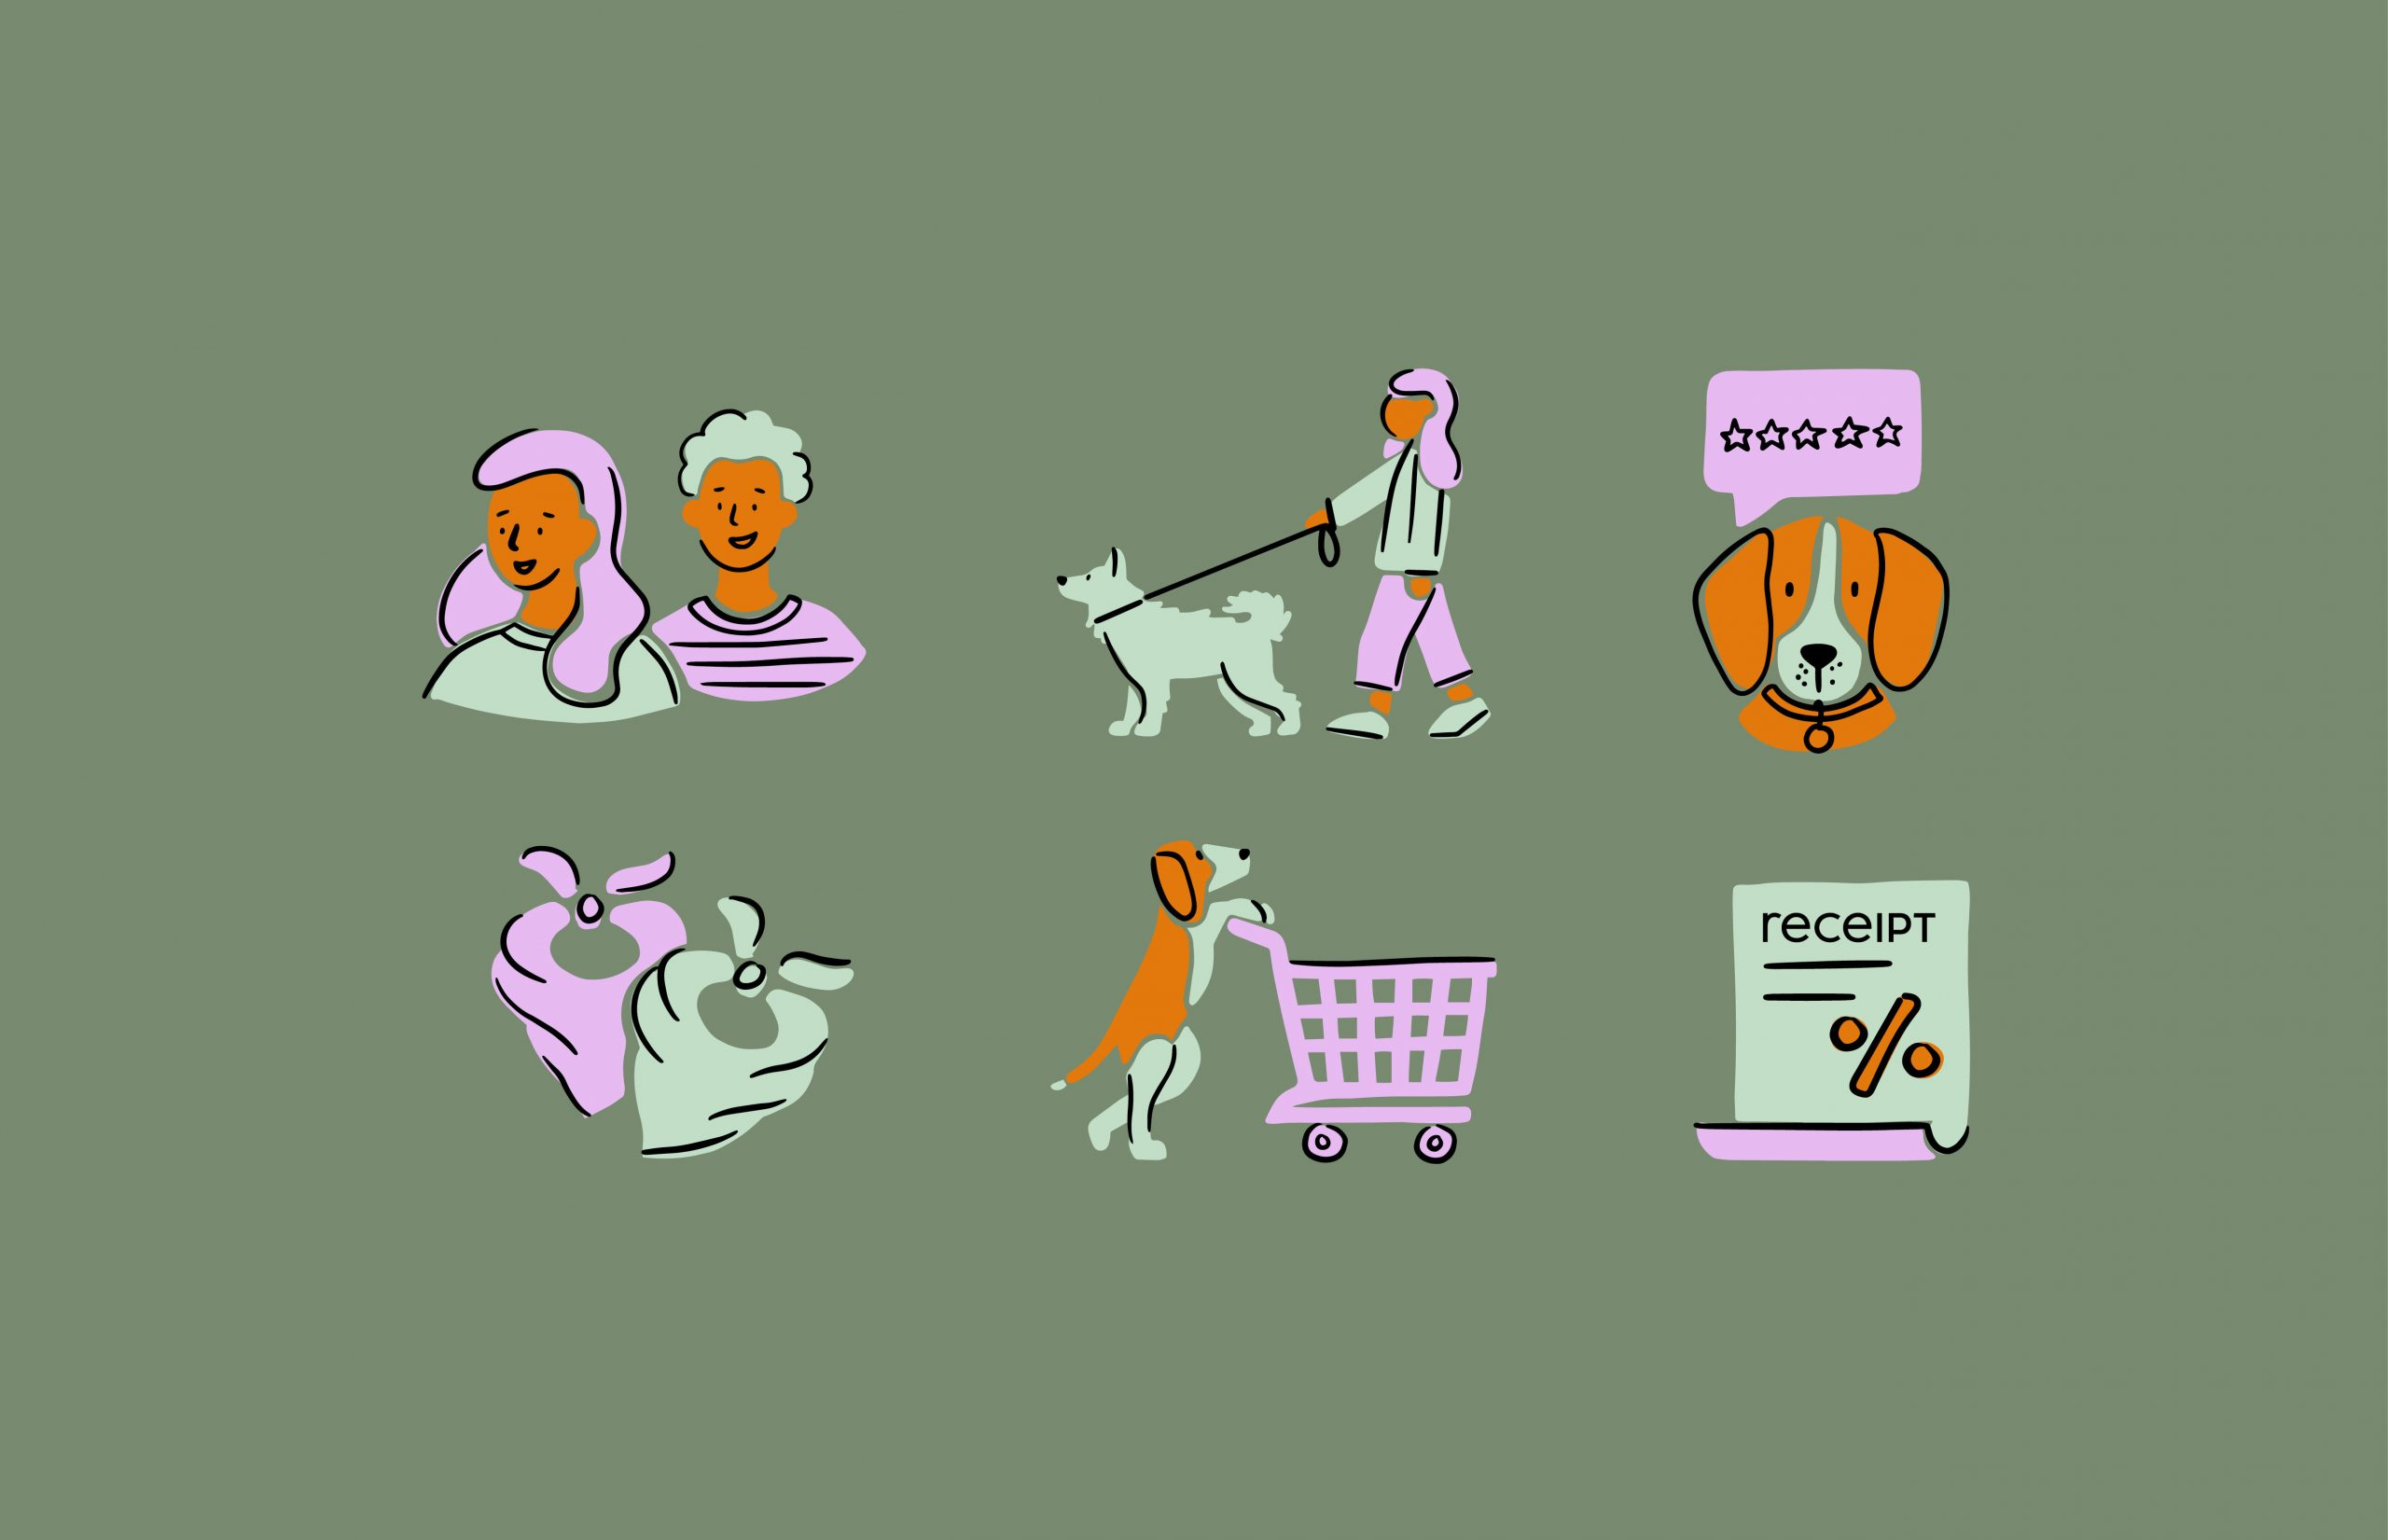 smiling people icon, walking dog icon, dog rating icon, bandana icon, shopping cart icon, receipt icon